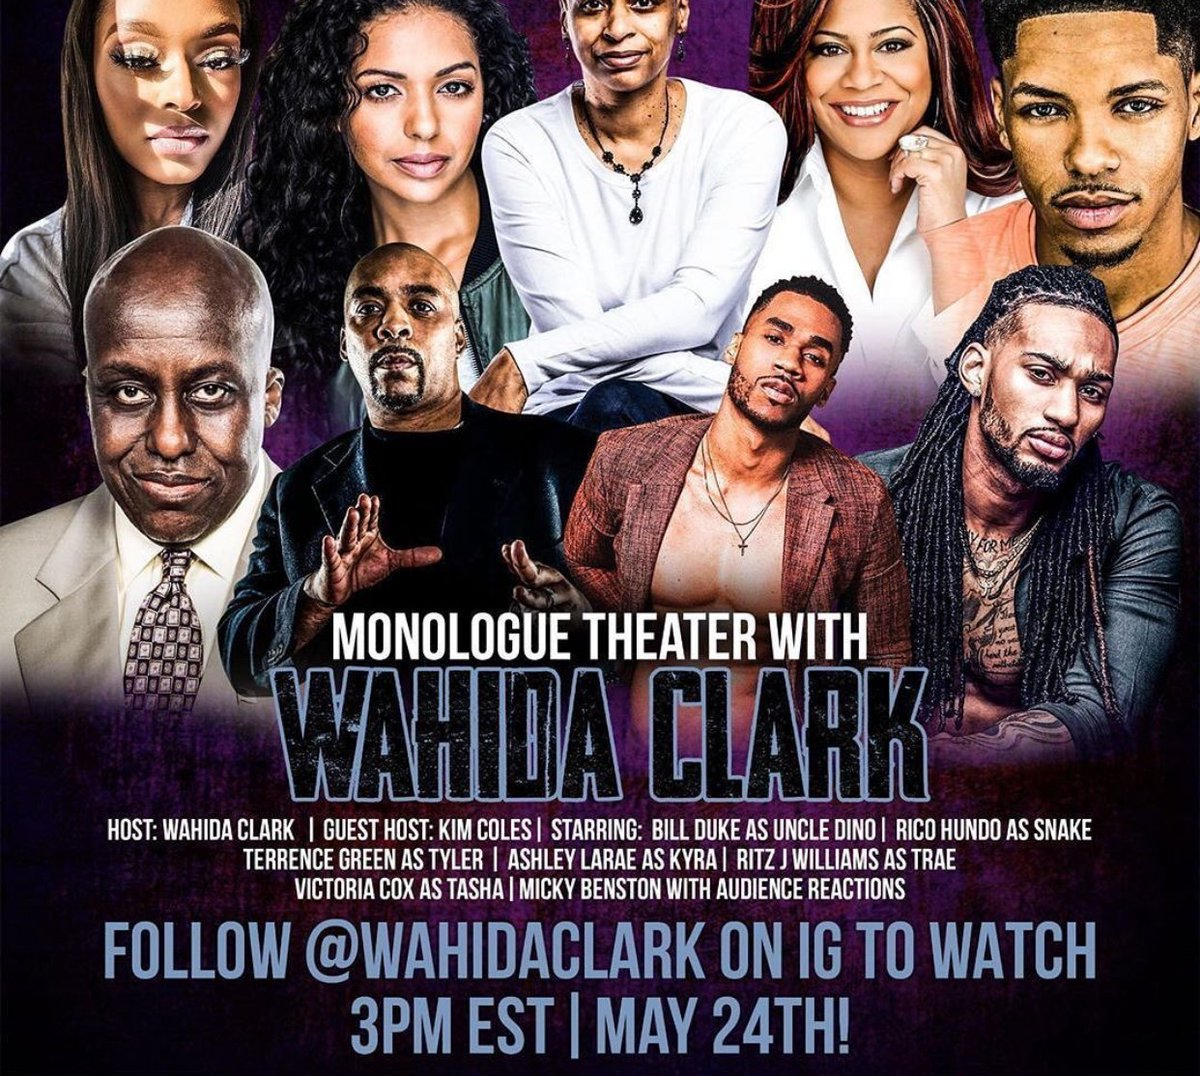 Catch me today 3pm -8pm follow @wahidaclark for a Live Monologue theater with Terrence Green, Ashley Larae, Rico Hundo, Victoria Cox, Ritz Williams and Mickey Bentson. Hosted by @kimcoles! #Monologuetheater #blacktwitter #instagram #stayhome #staysafe #stayhealthy #staypositive